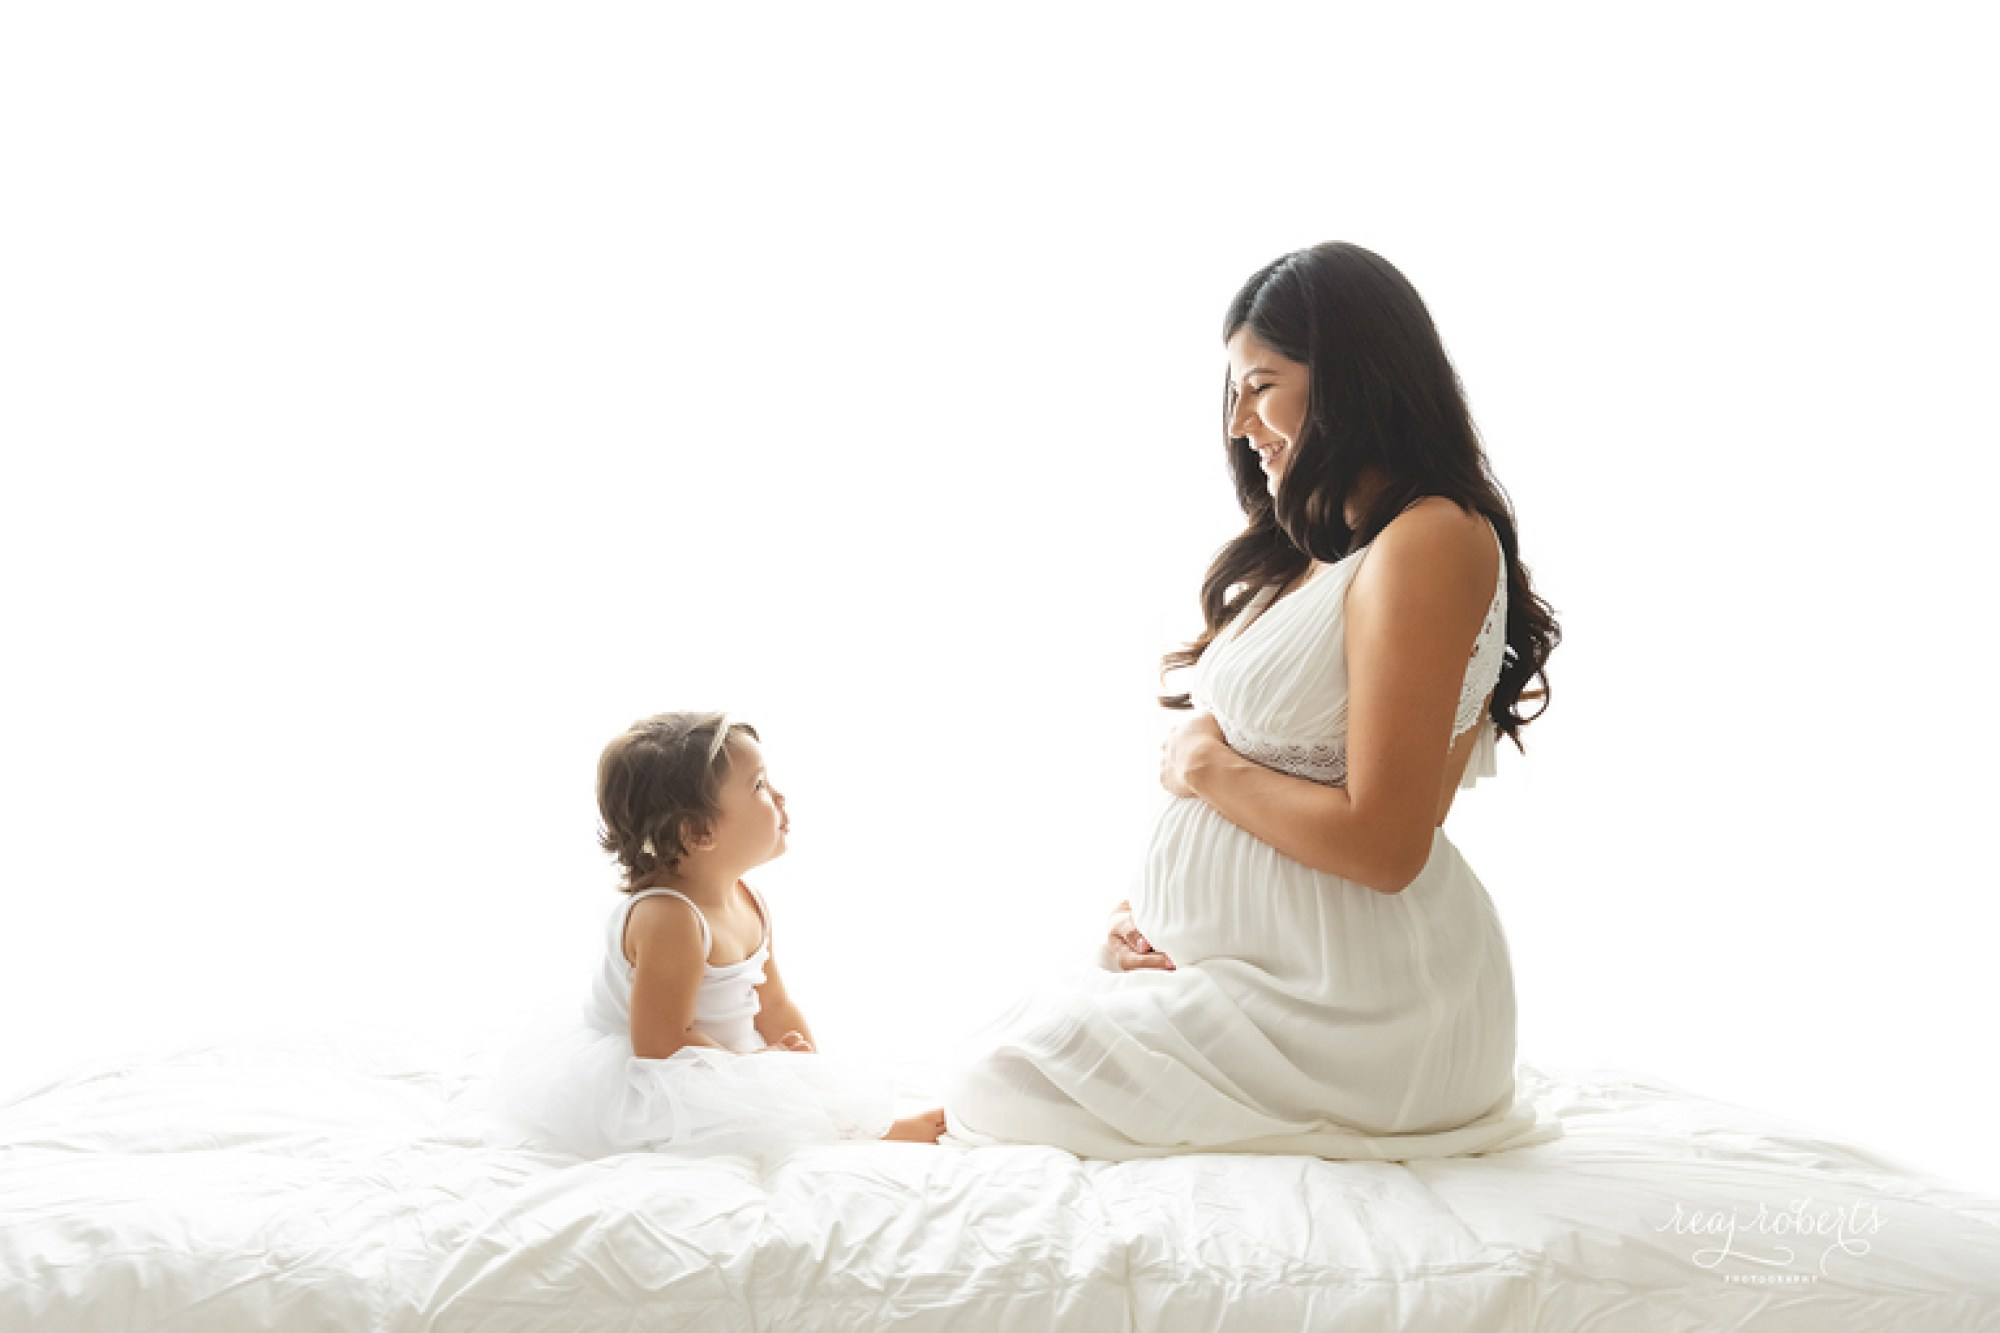 Chandler Maternity Photographer | Pregnancy photos with toddler | Reaj Roberts Photography